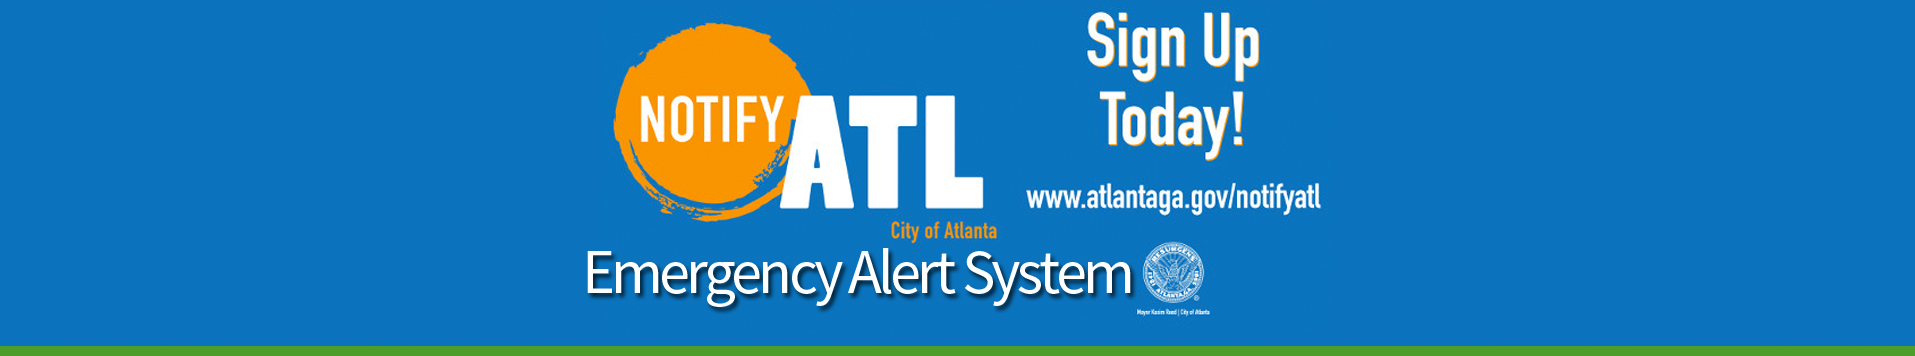 Sign up for Notify ATL to receive real-time updates to your home, mobile or business phone by text and voice.